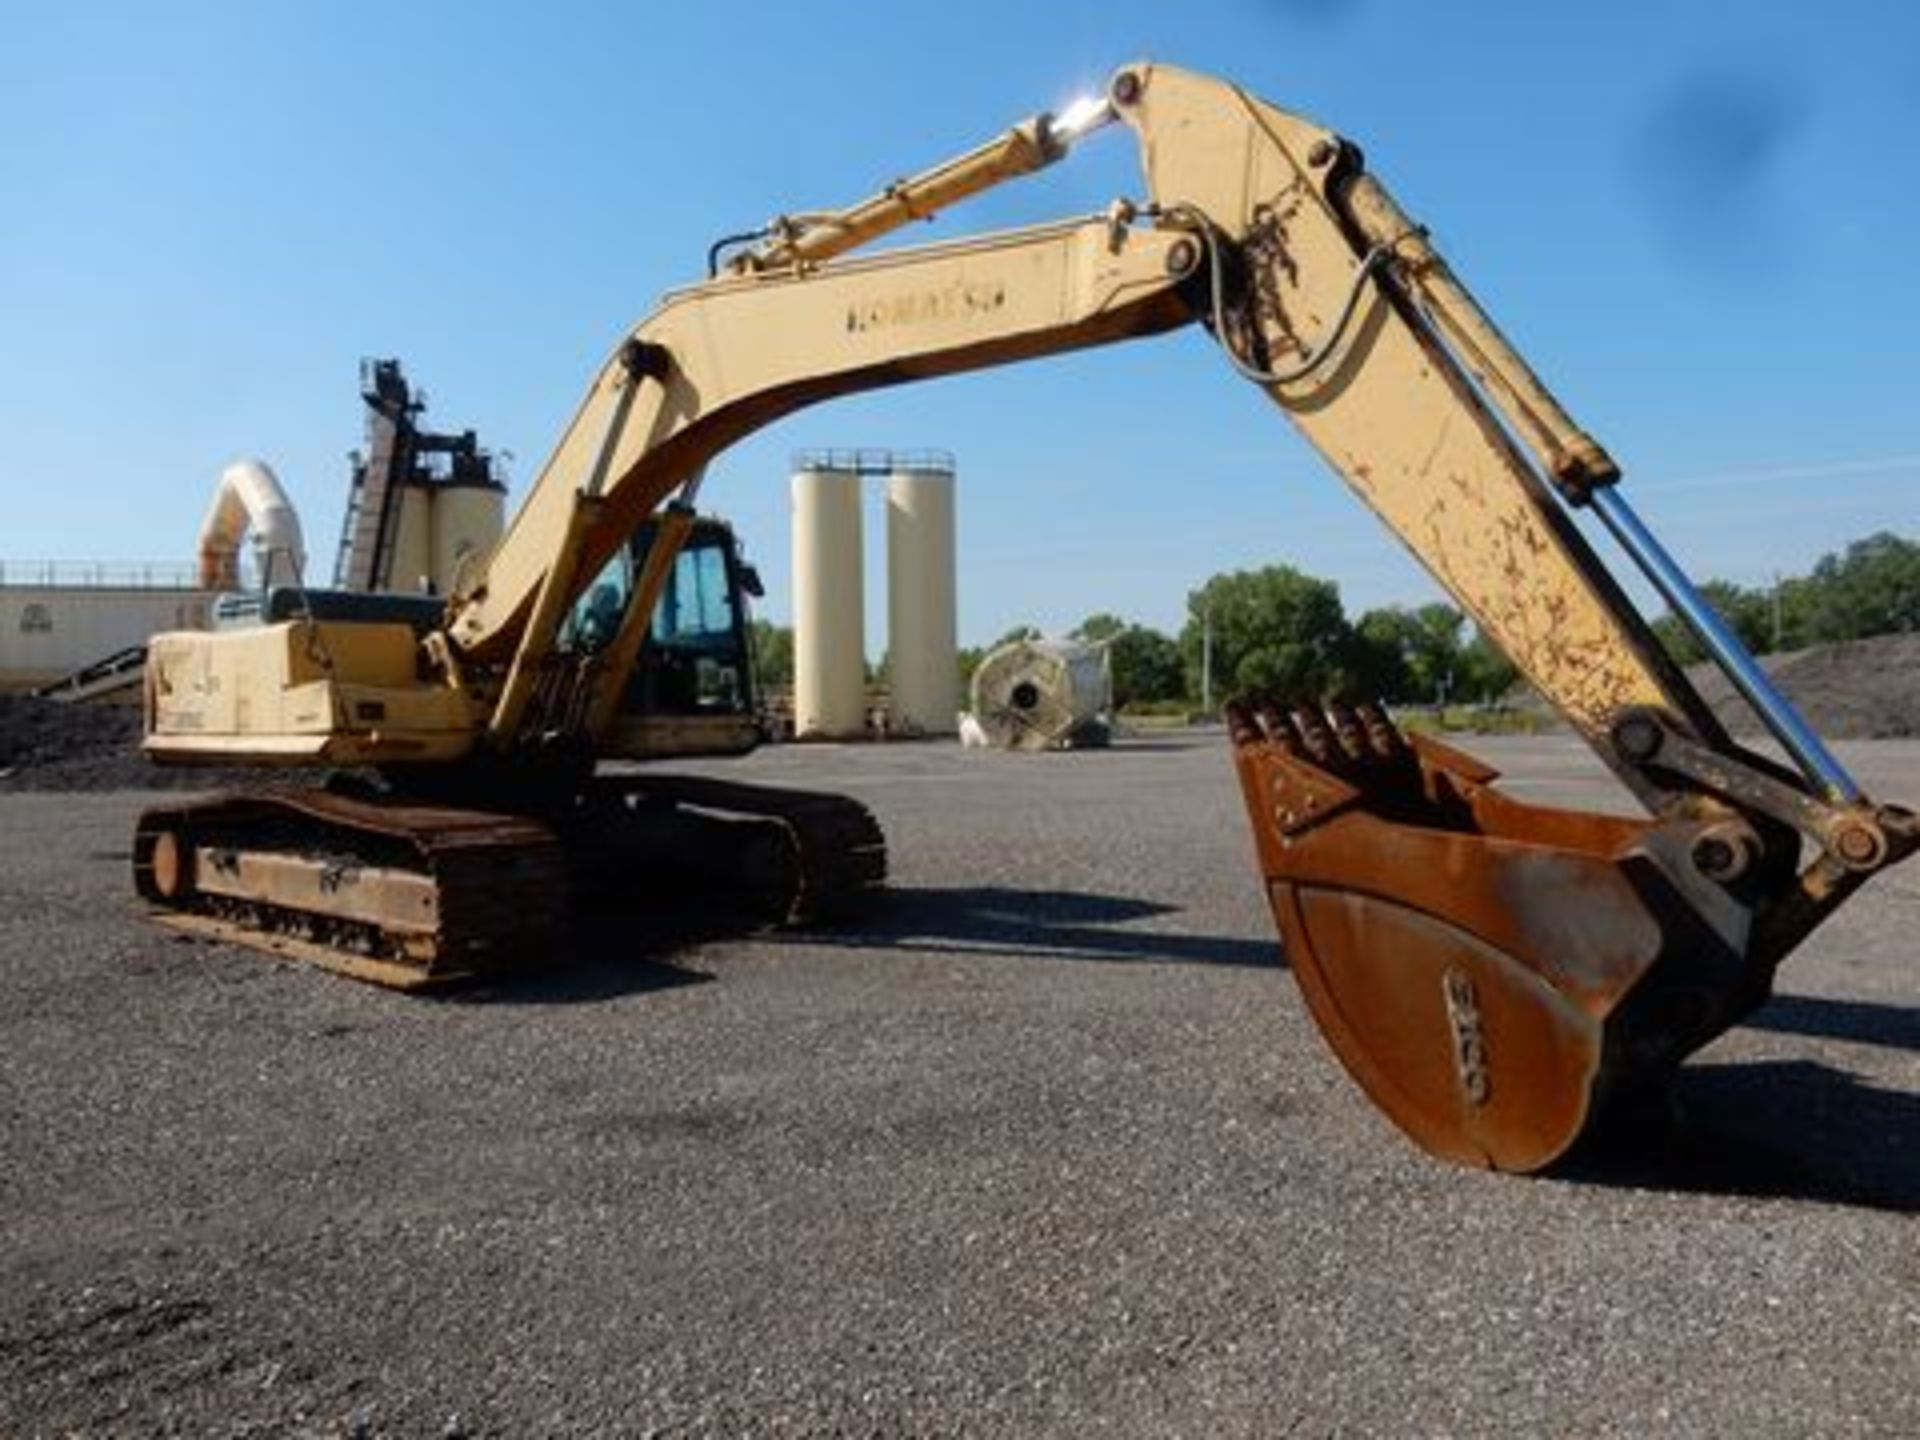 1997 KOMATSU EXCAVATOR, M# PC300LC-6LC, S/N A80735, HOURS N/A, 3-YD BUCKET, MISSING FRONT GLASS